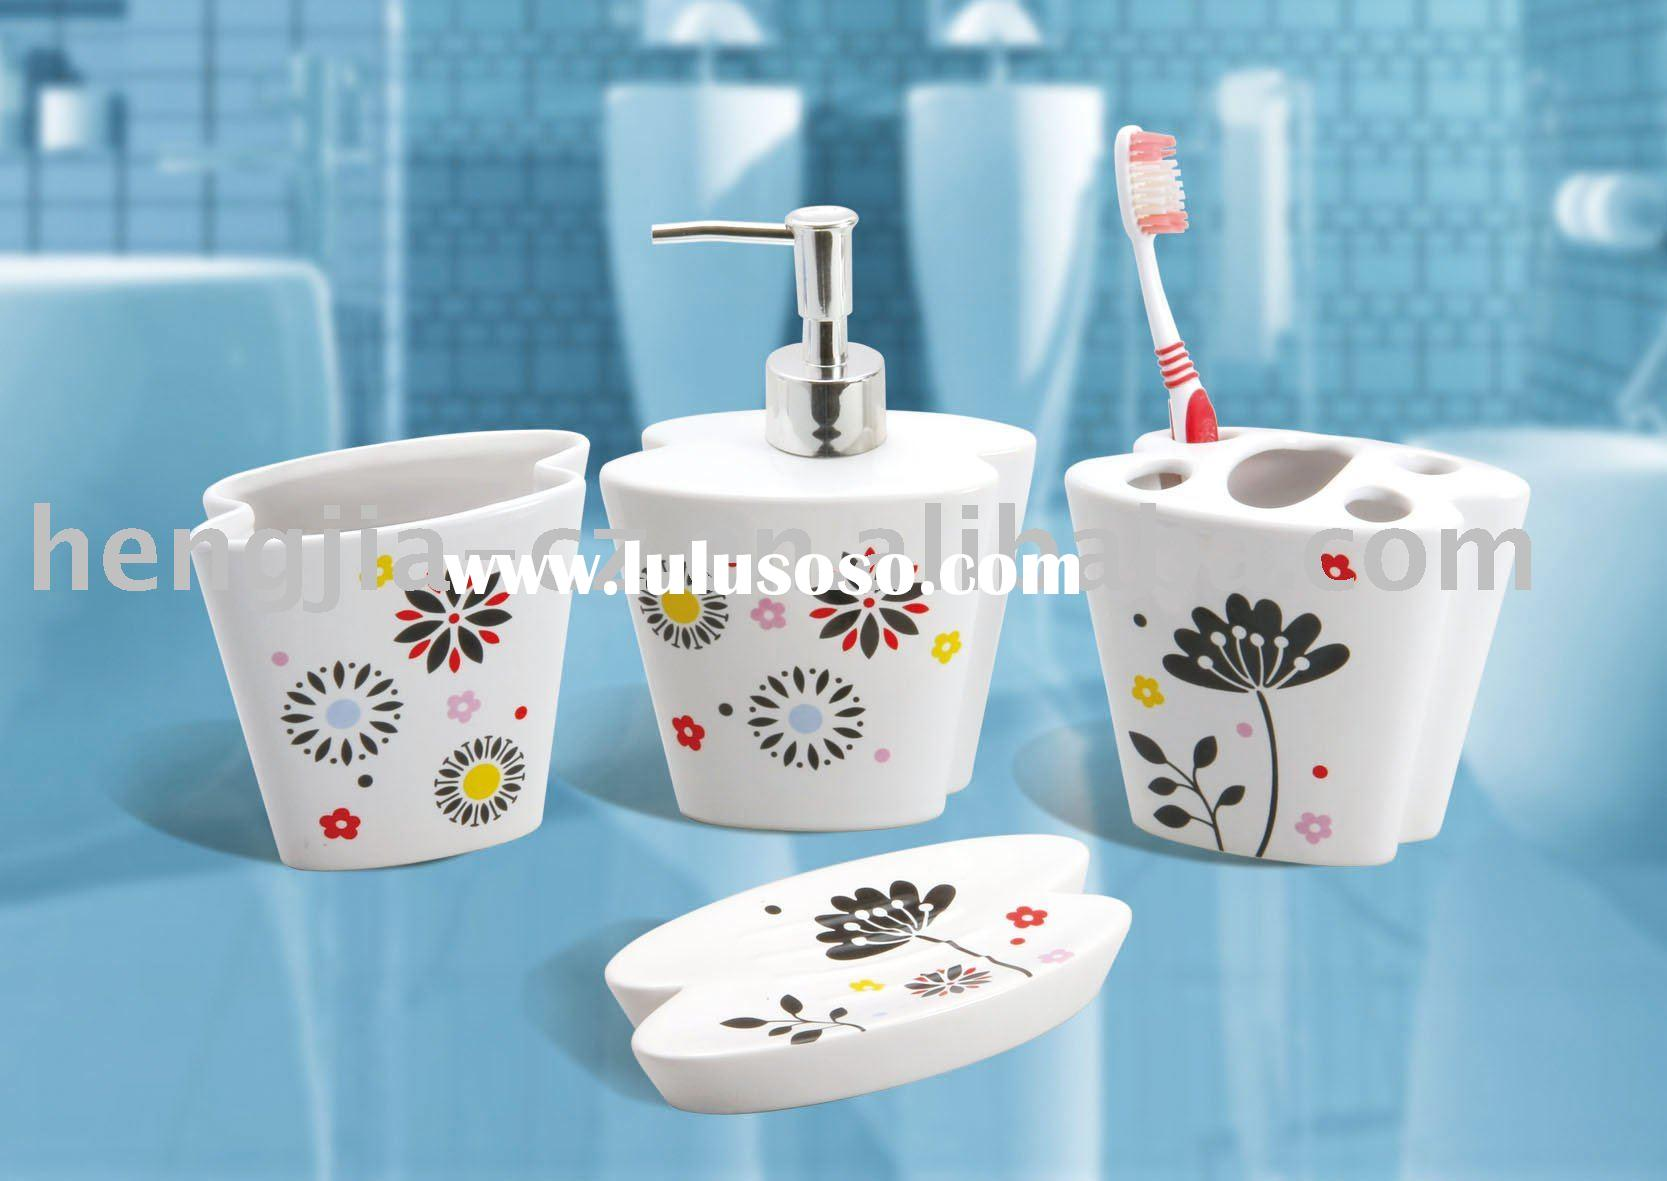 Elegant flower pattern ceramic bathroom accessory set